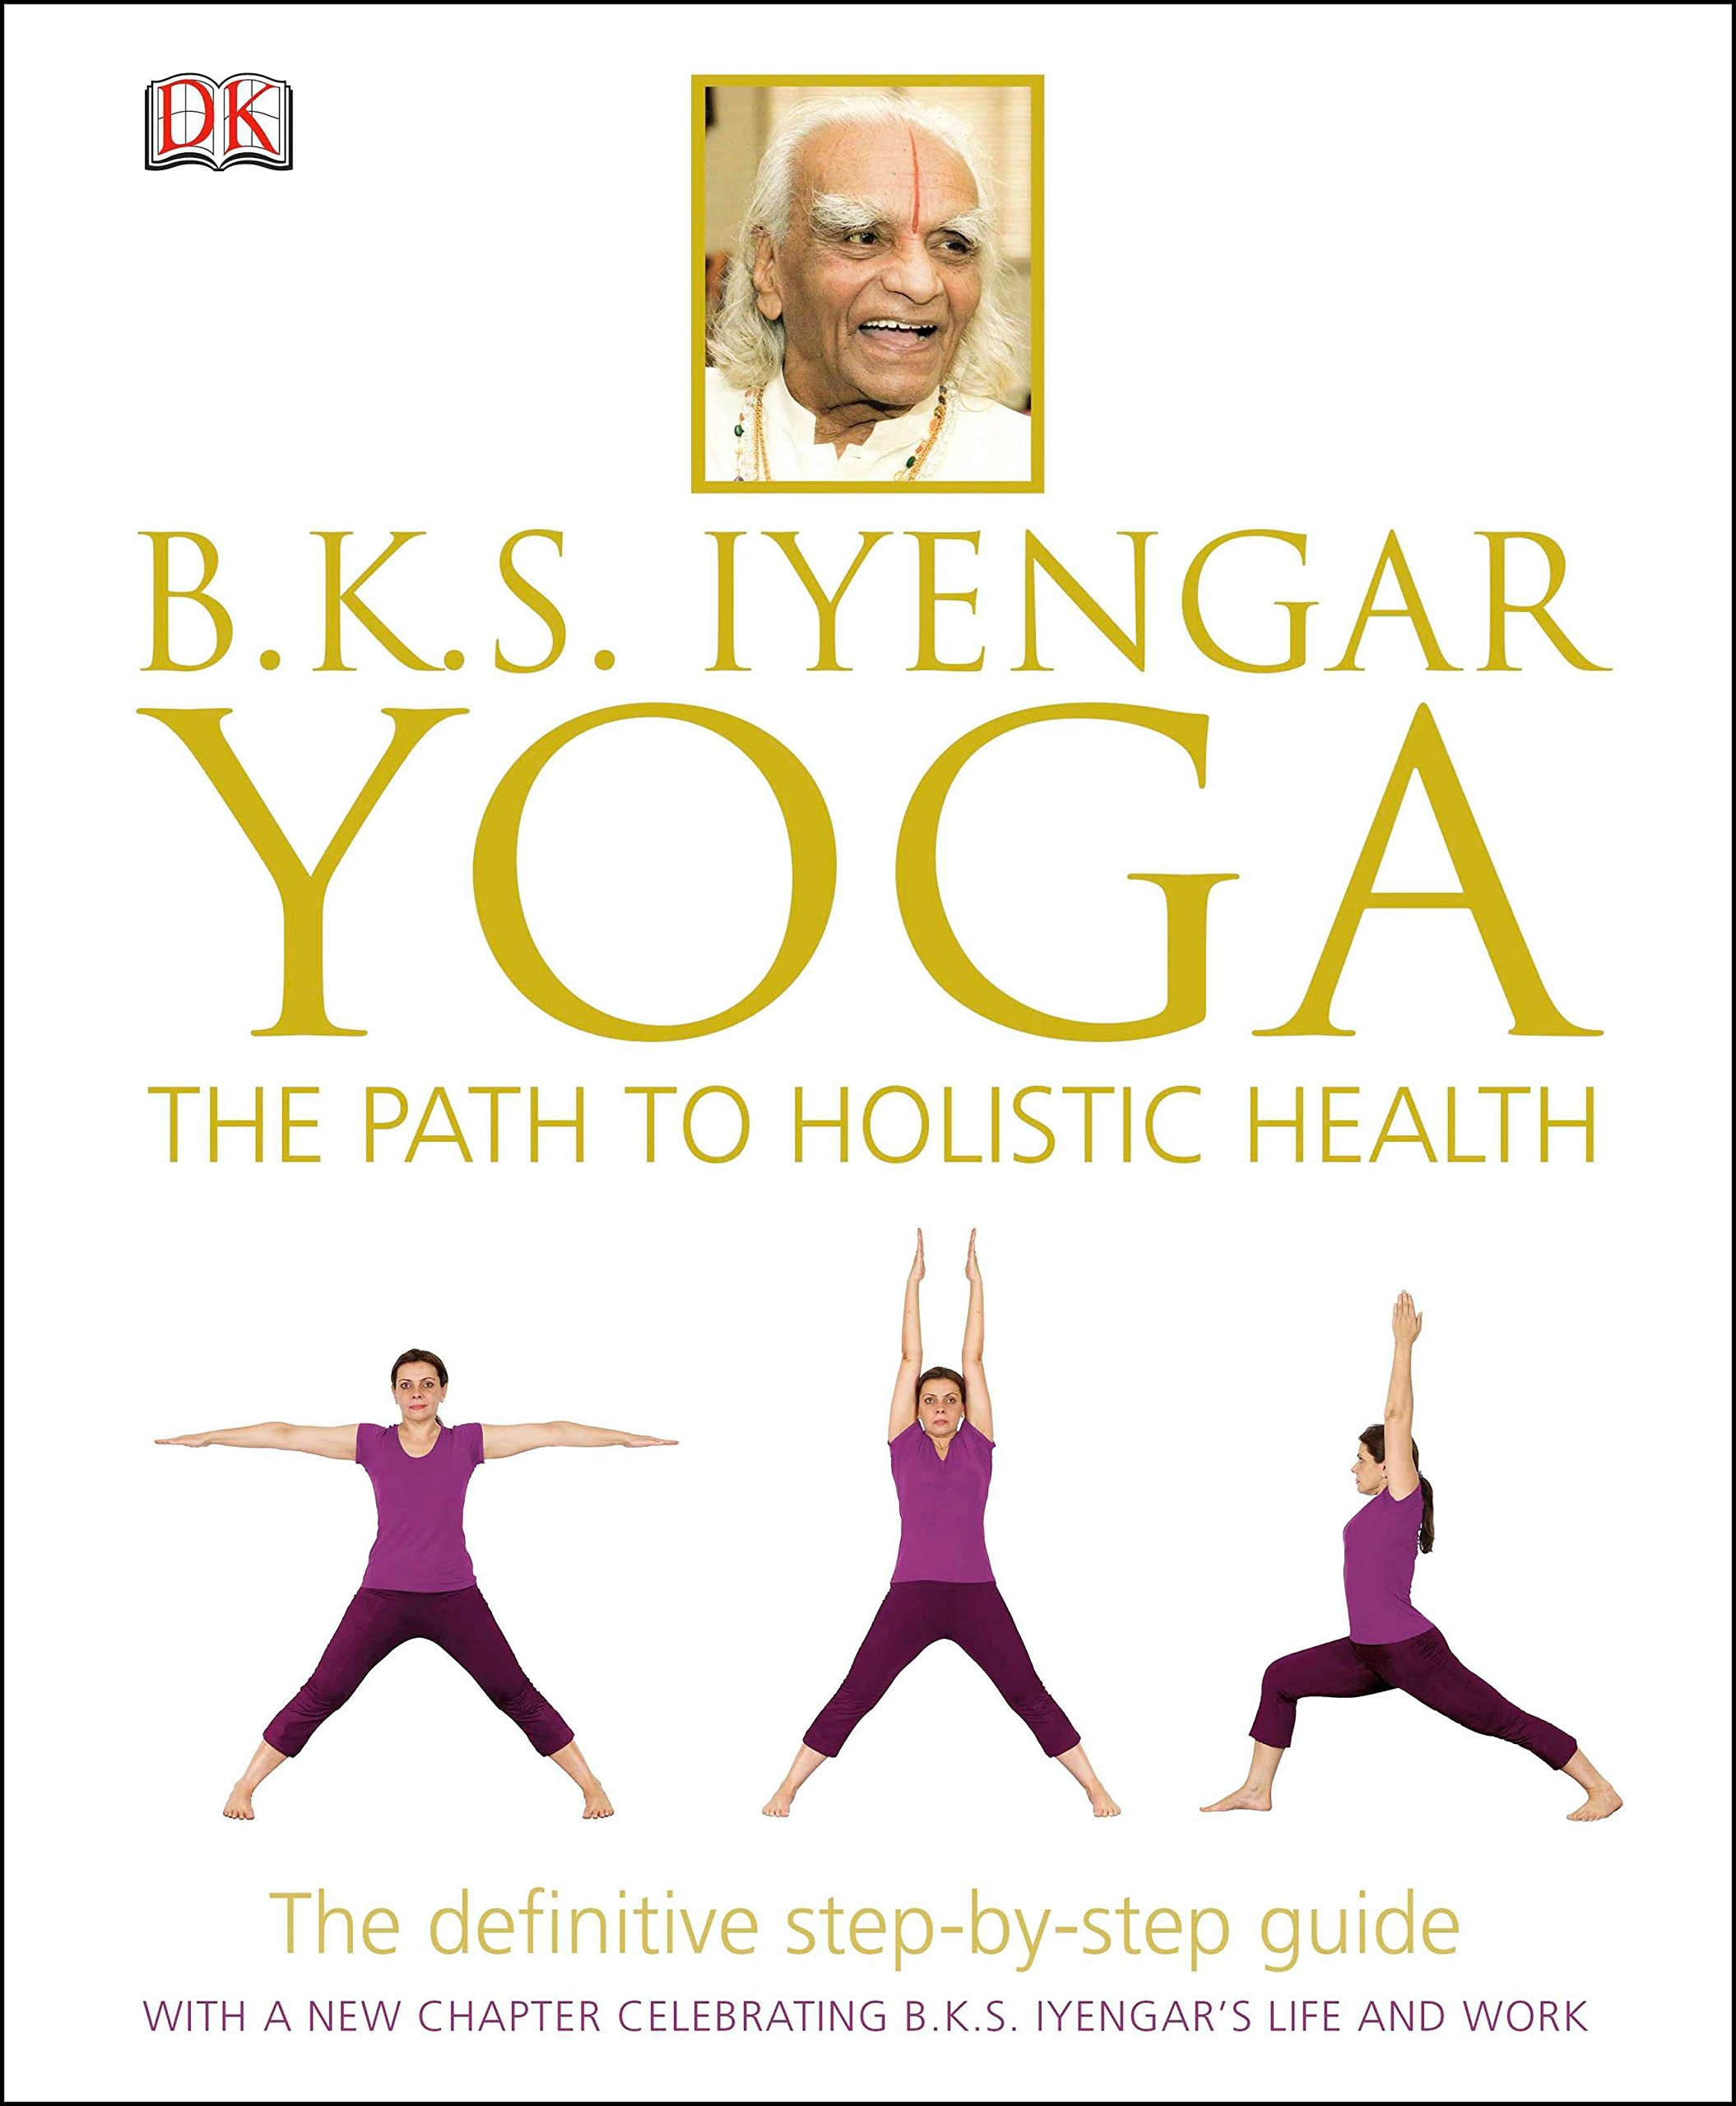 B.K.S. Iyengar Yoga: The Path to Holistic Health - by B.K.S. IyengarIn BKS Iyengar Yoga: The Path to Holistic Health, the guru himself guides you through over 55 yoga poses, each with step-by-step instructions illustrated in full colour. Iyengar even explains his philosophy throughout the book - it's like having yoga classes with your own personal instructor.A special, 20-week beginners' yoga course makes yoga accessible for those of all ages and abilities. 20 classic Iyengar yoga poses have a unique, 360-degree presentation so that you can see the correct form from all angles.Specially developed yoga sequences help you to alleviate more than 80 ailments, ranging from asthma and arthritis to varicose veins.